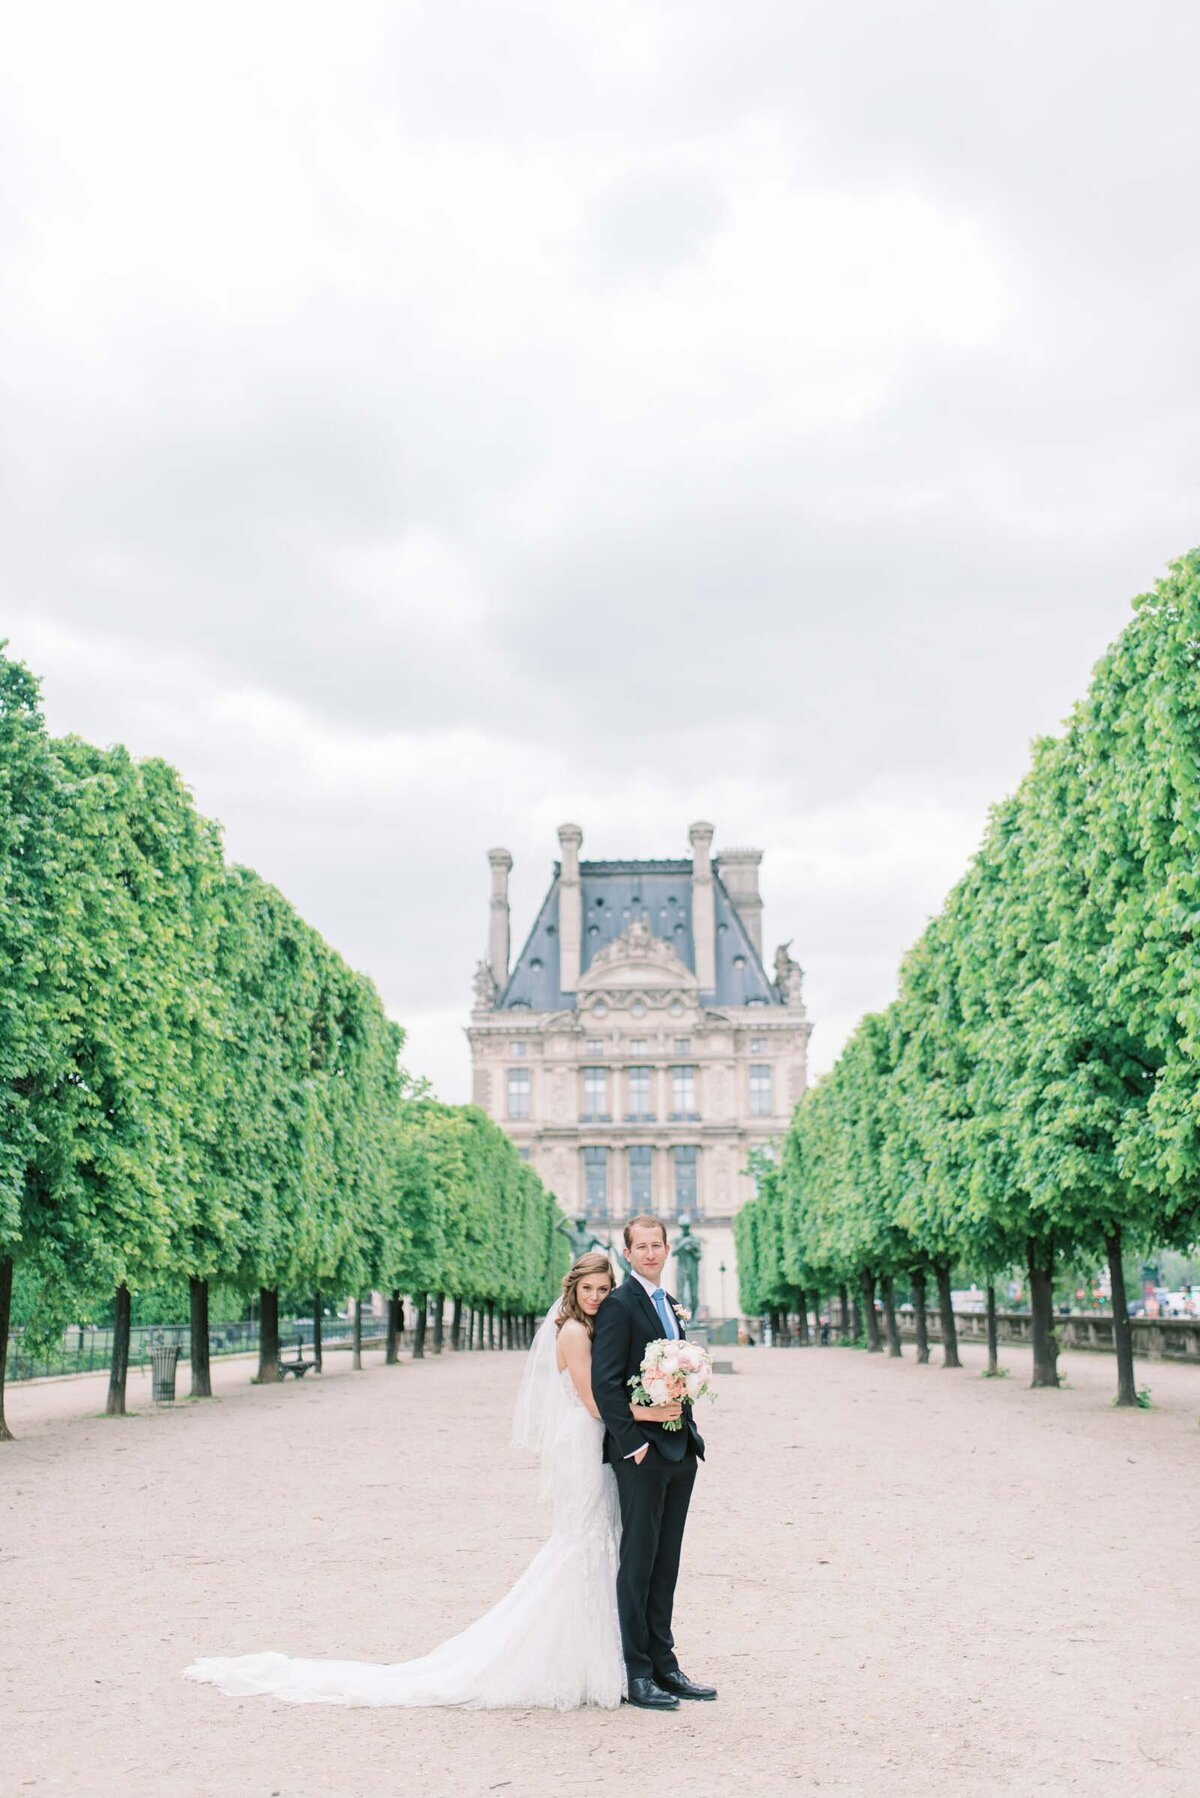 marcelaploskerphotography-paris_wedding-63